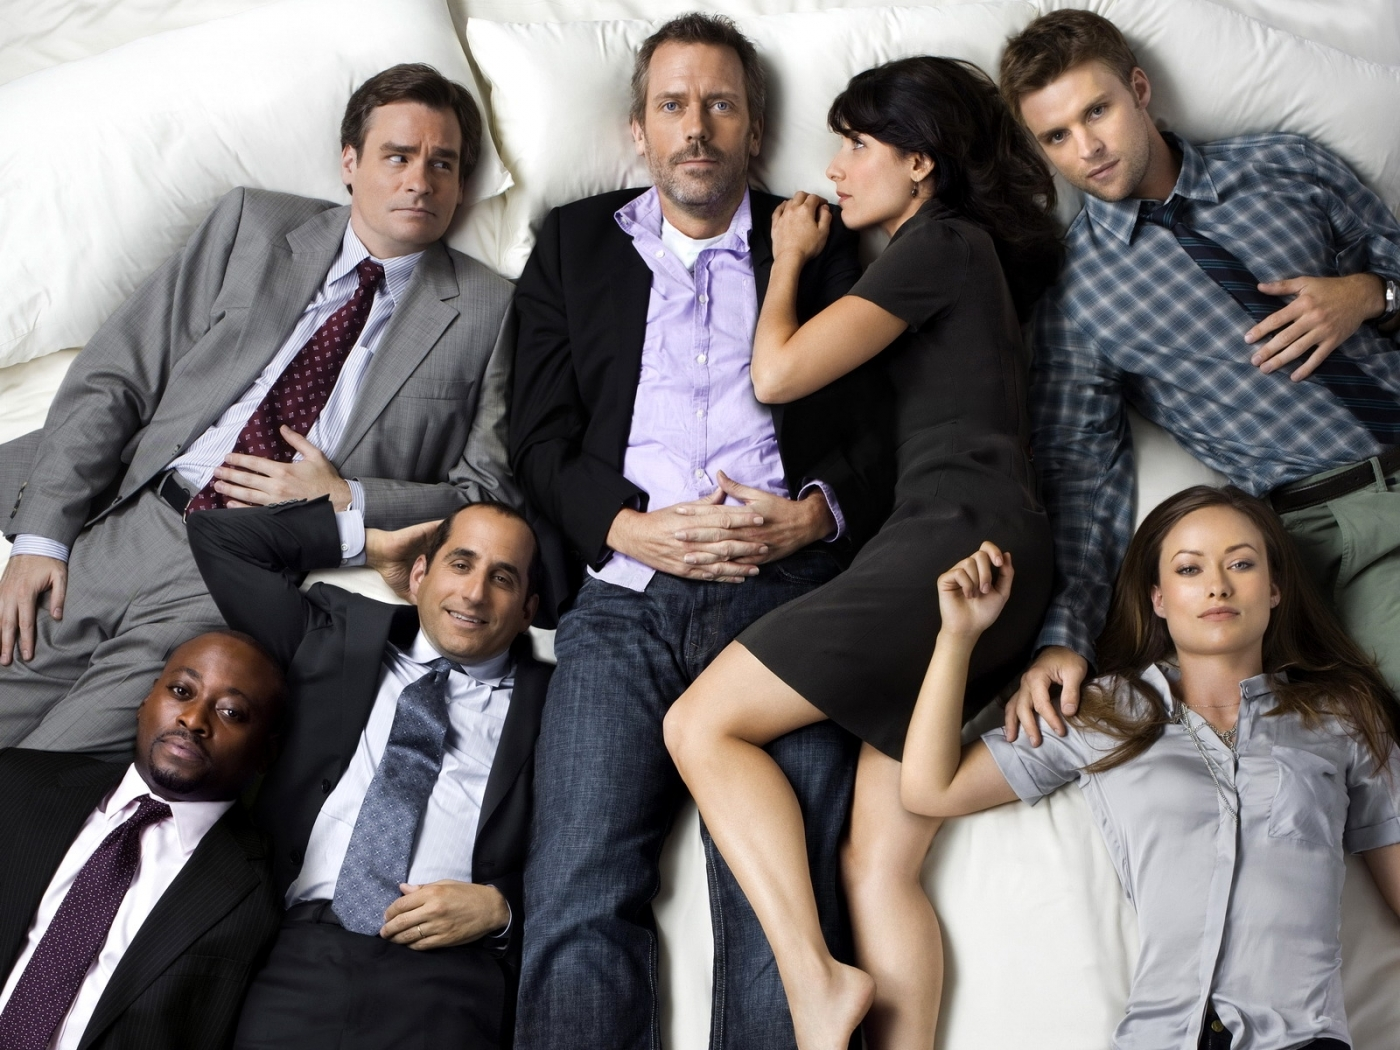 46447 download wallpaper Cinema, People, House M.d. screensavers and pictures for free